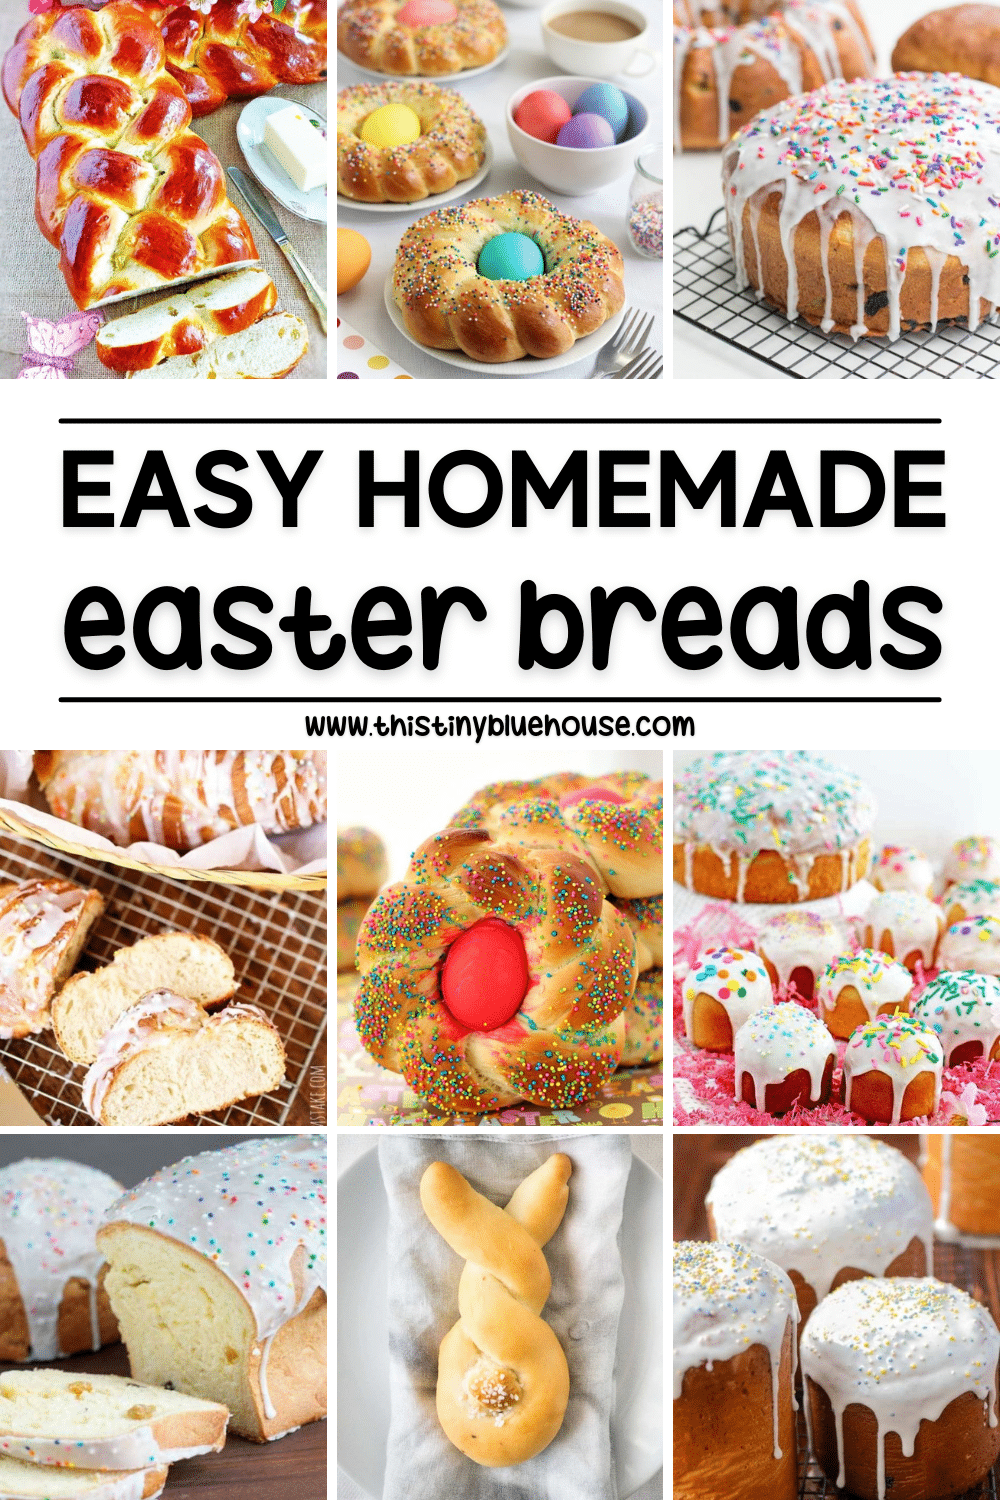 Easy Homemade Easter Breads